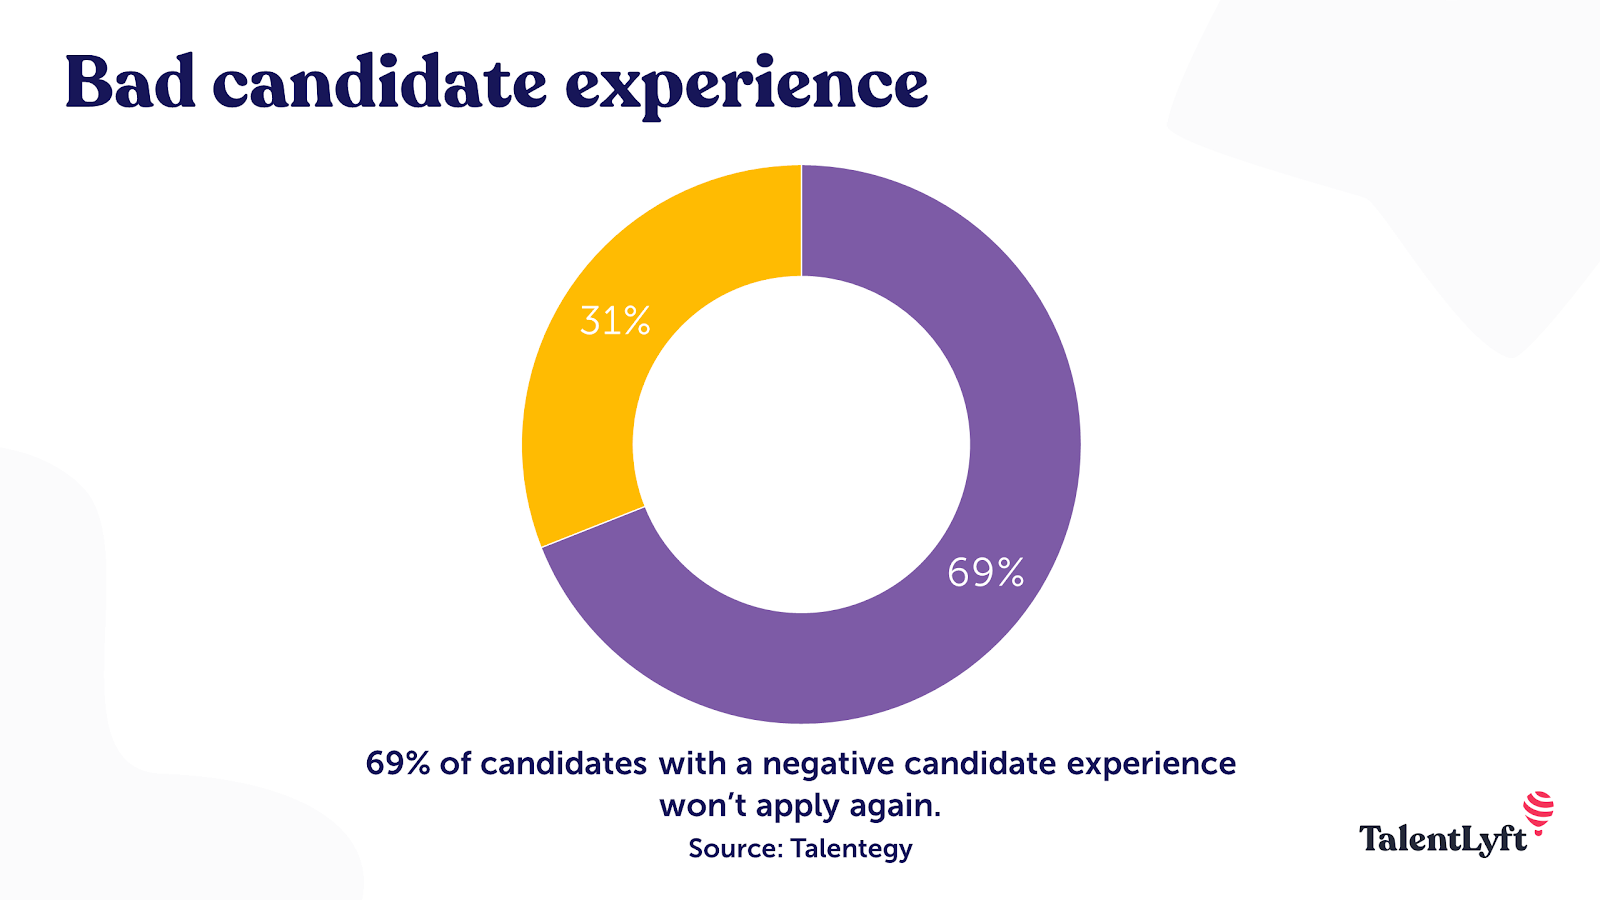 Bad candidate experience